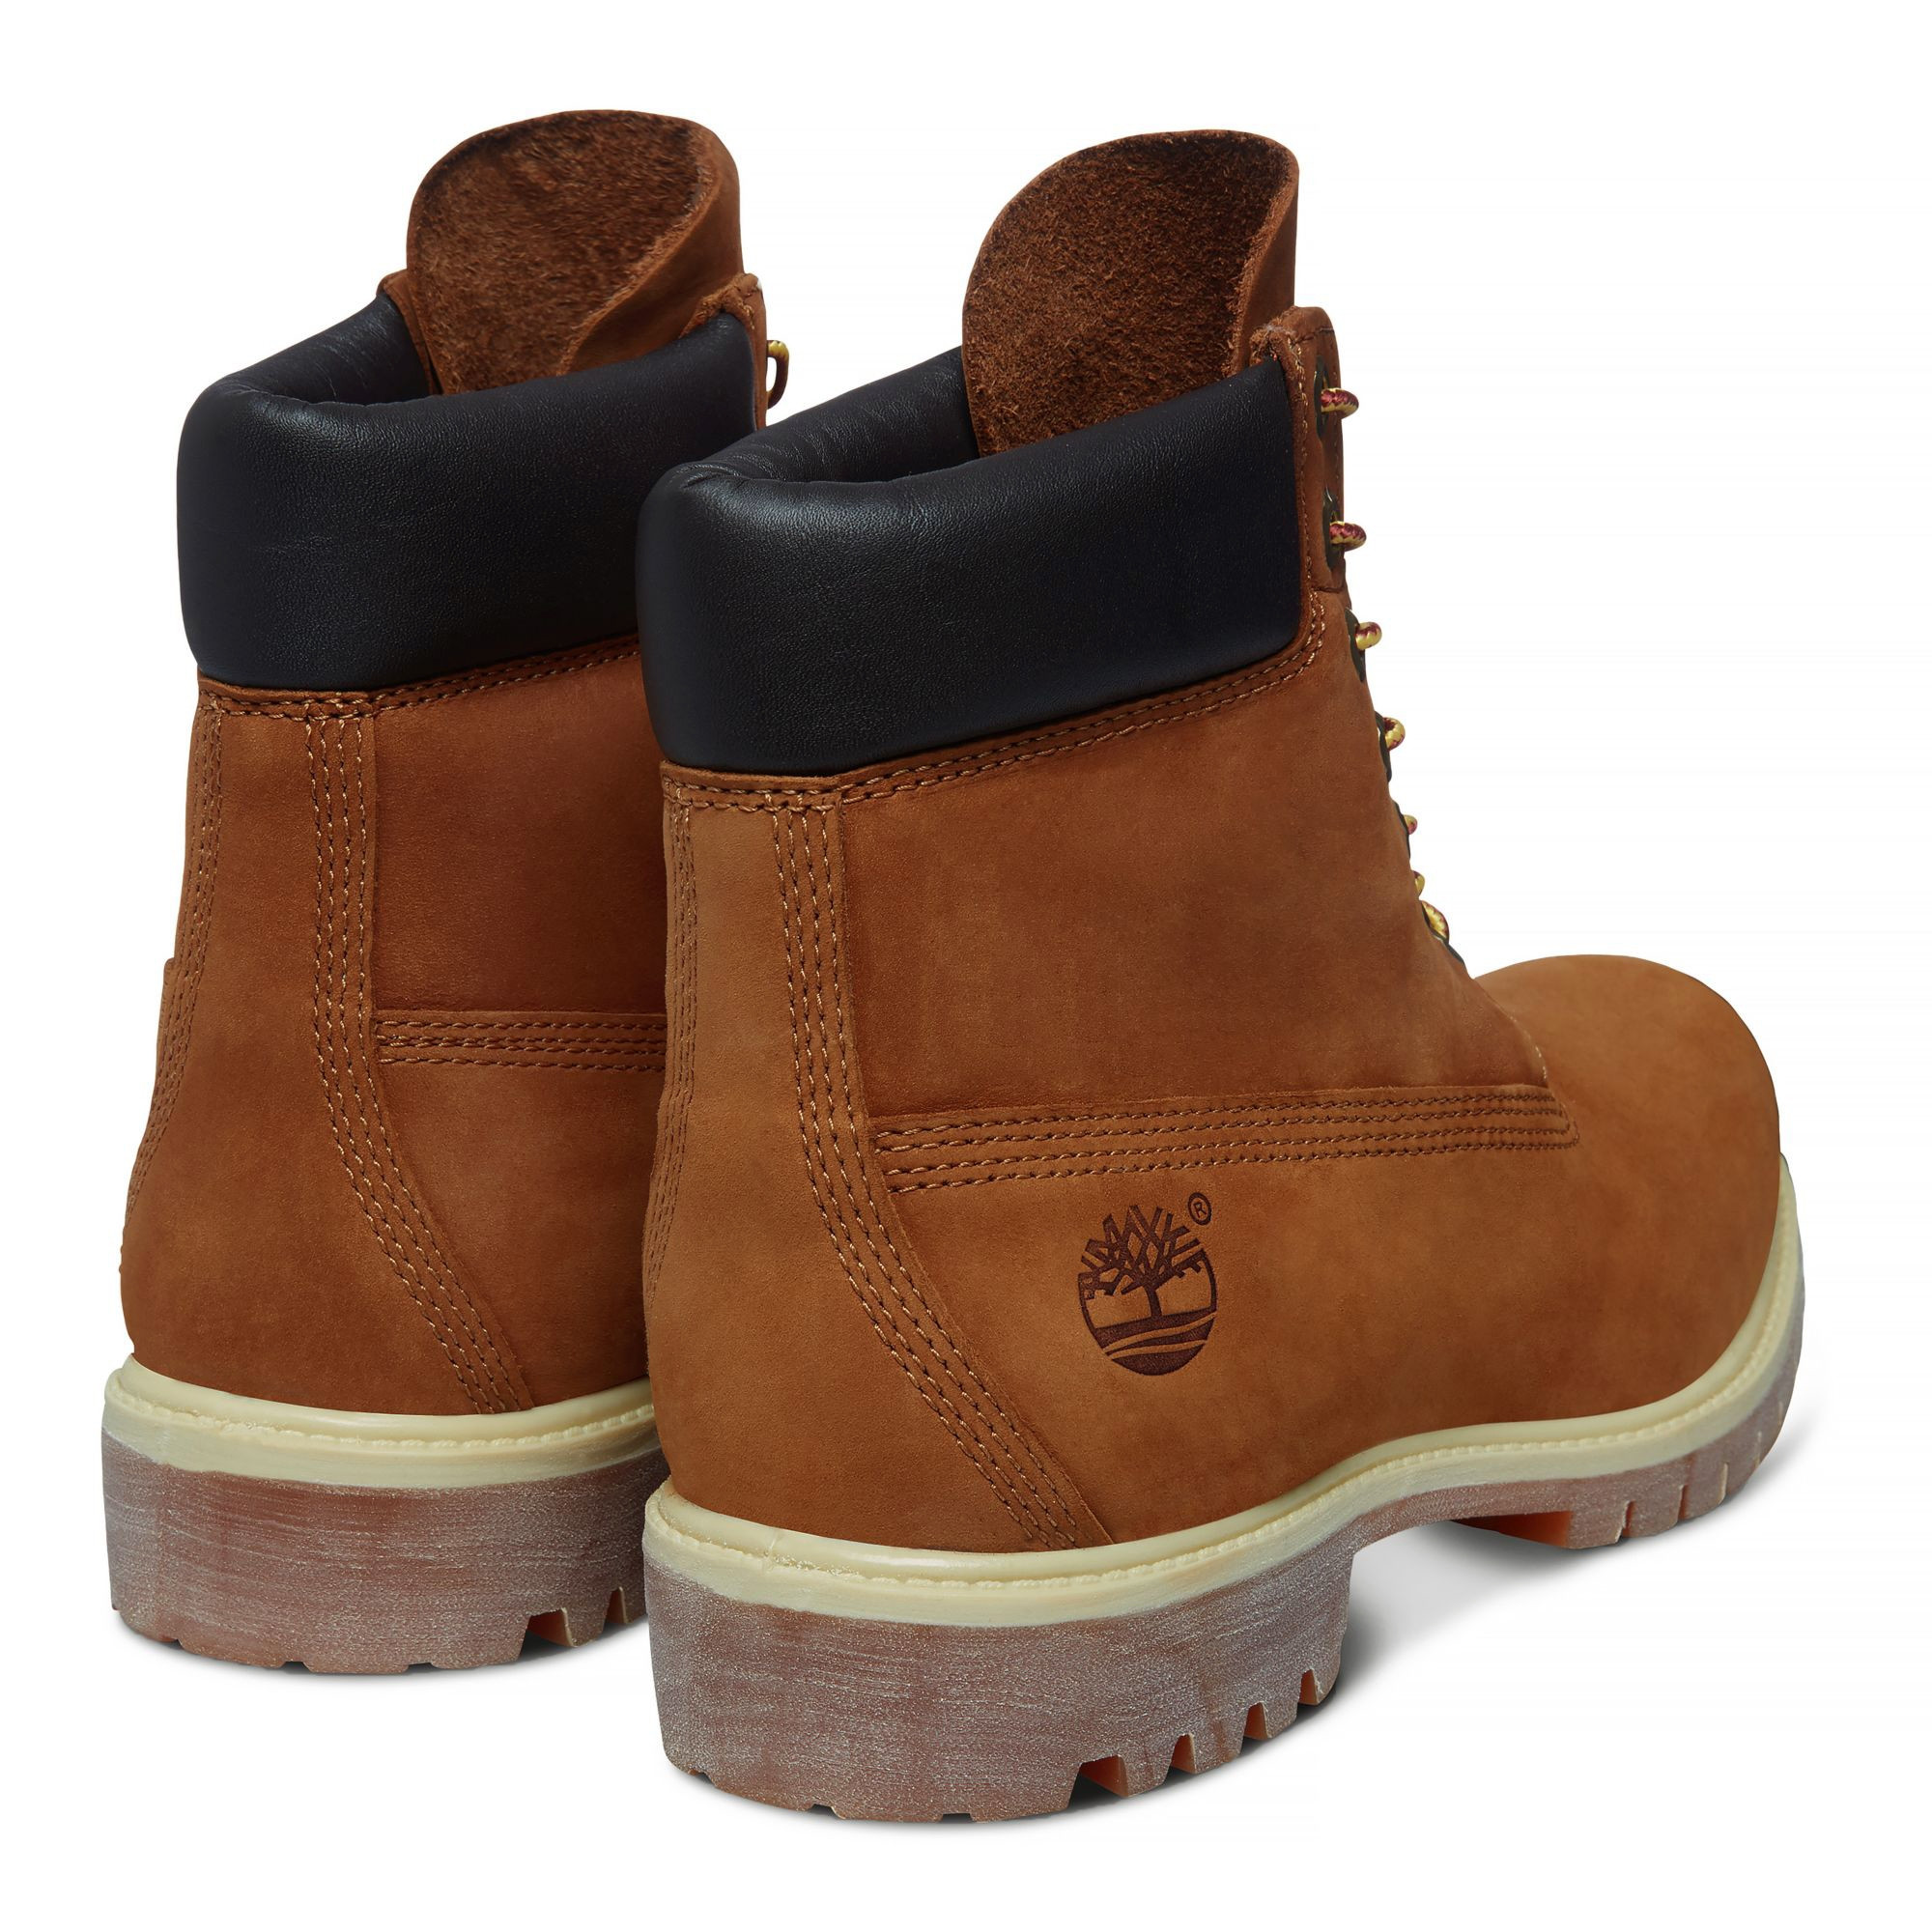 904f6668297 Timberland Mens Premium 6 Inch Leather High Boots Boots Rust Orange ...